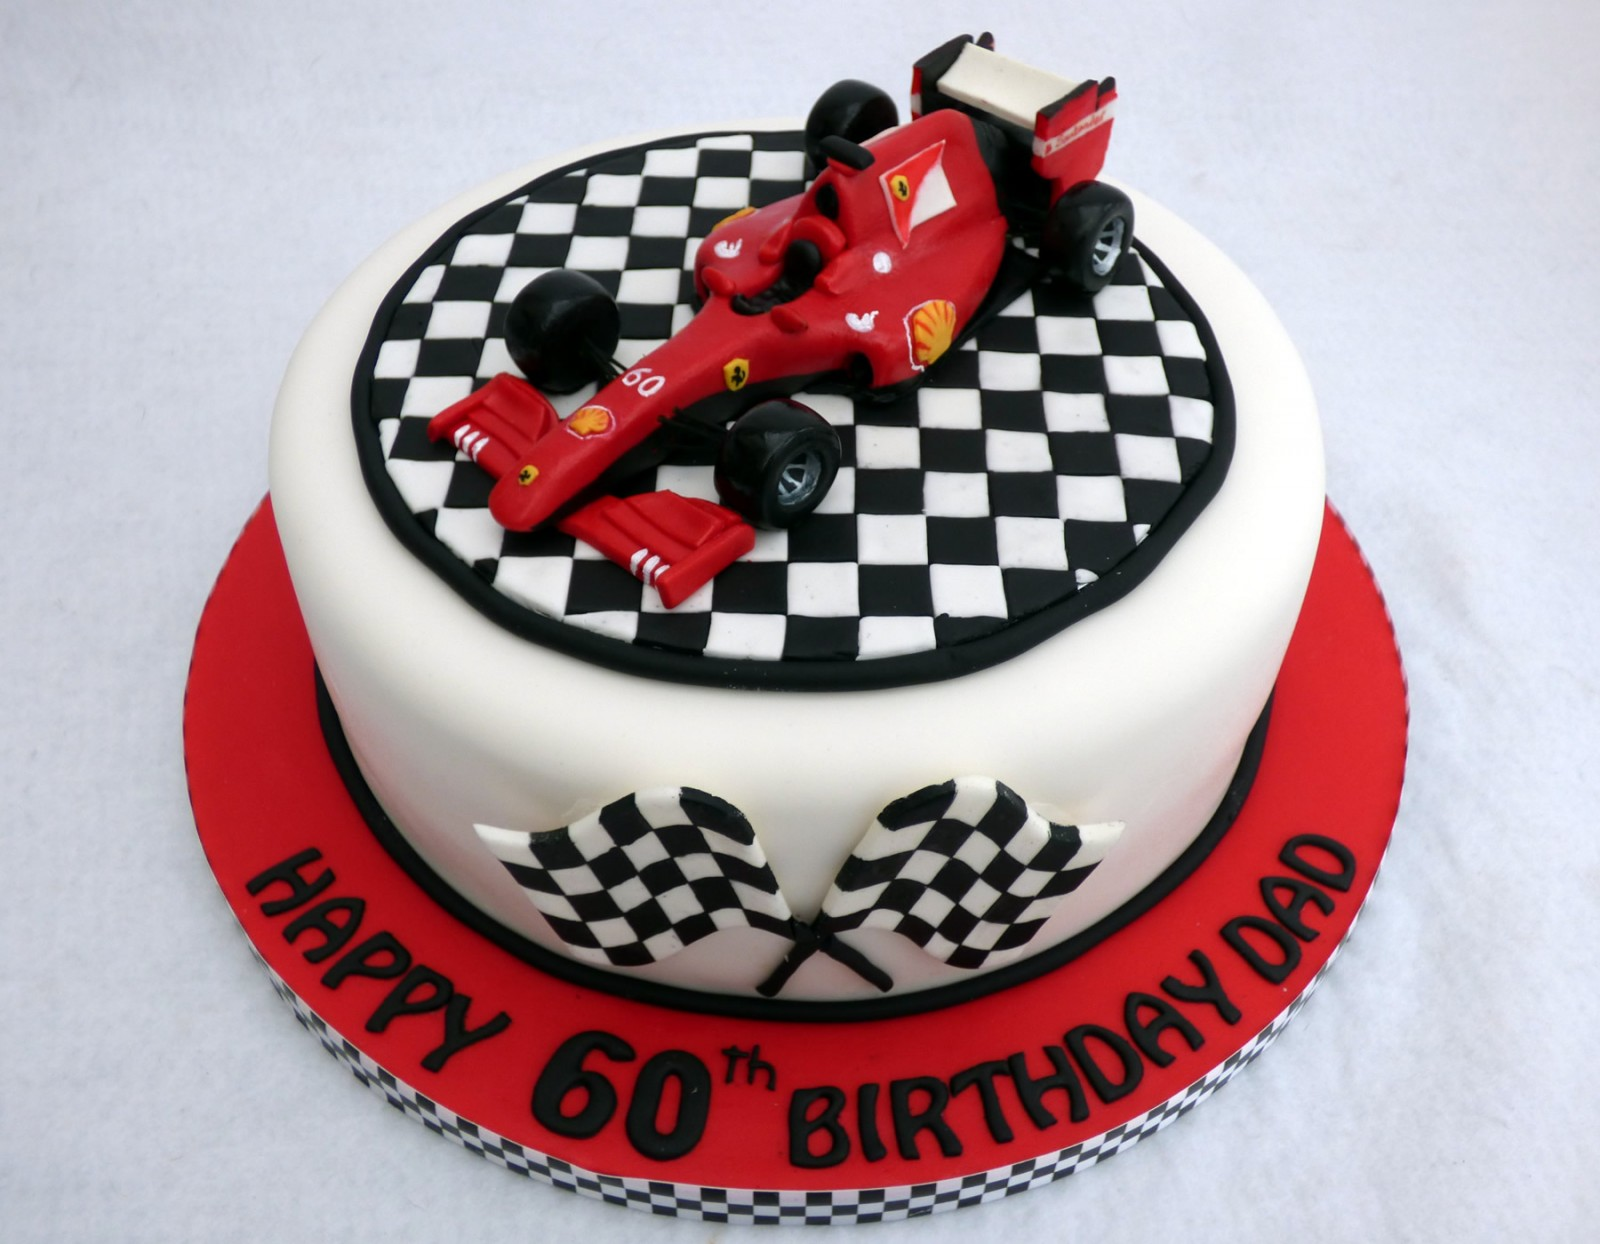 Ferrari F1 Racing Car Birthday Cake Topper   Susie s Cakes